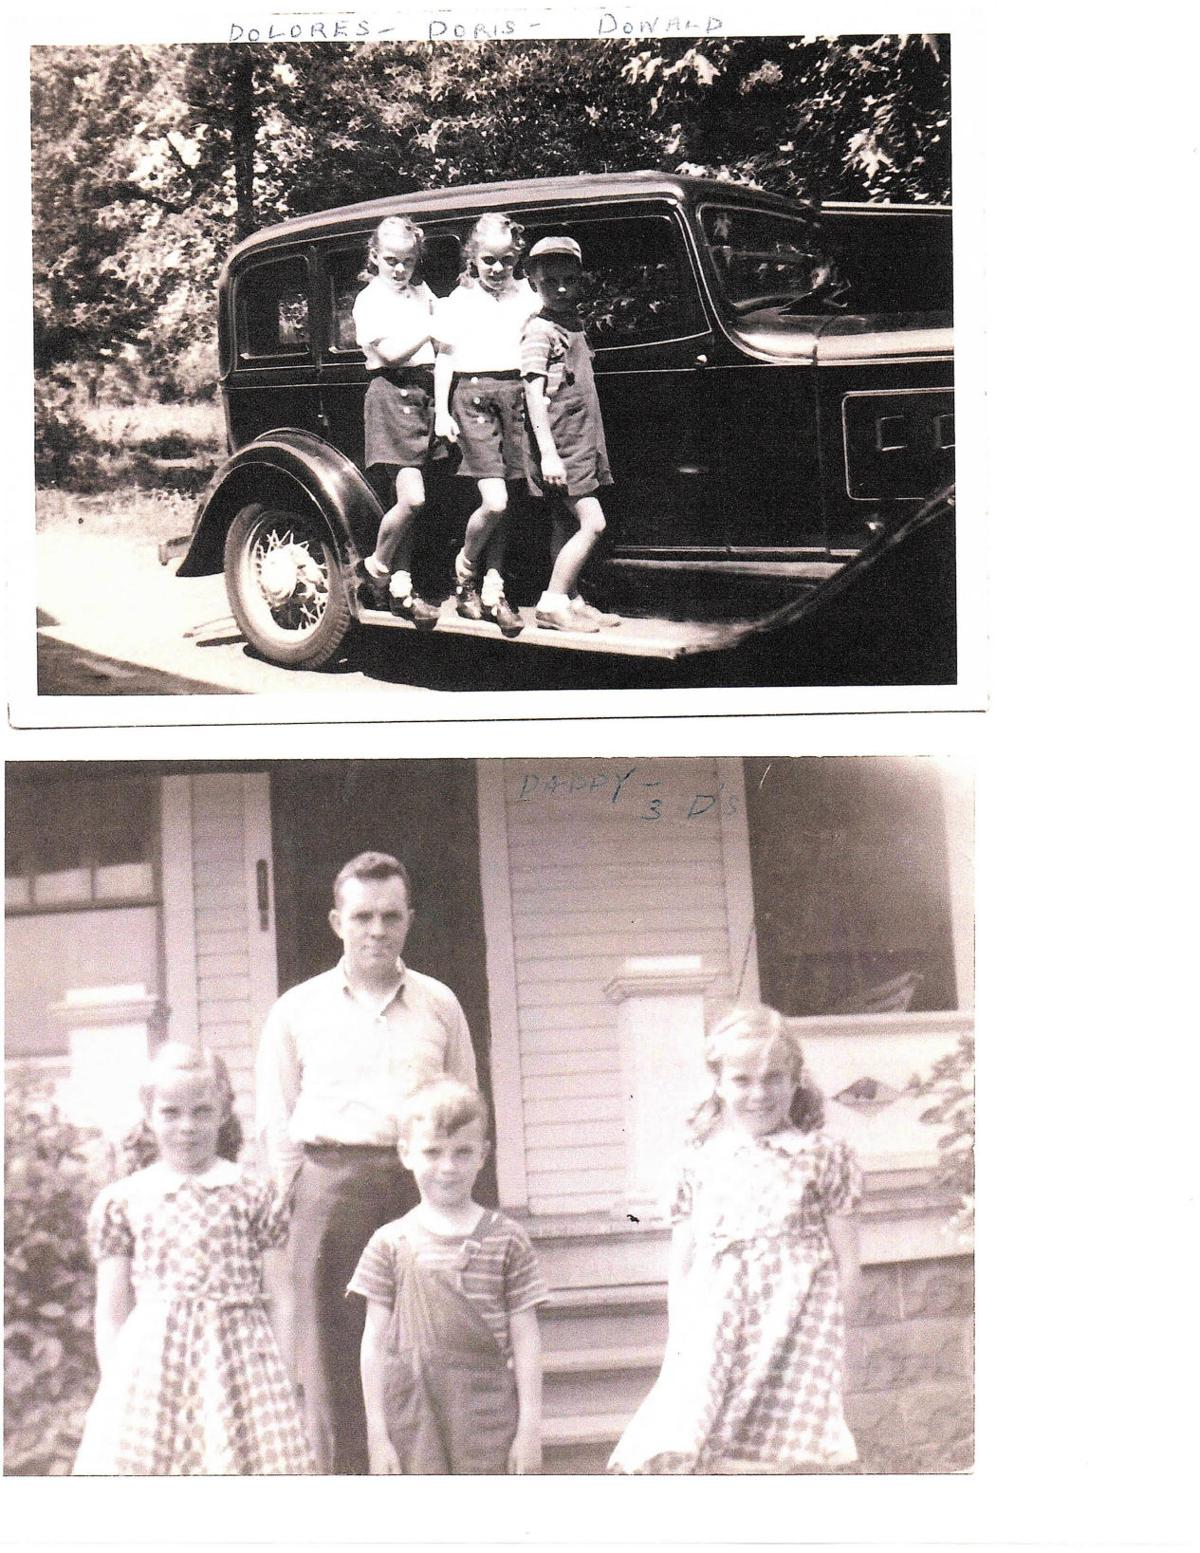 Don Haskell family photos